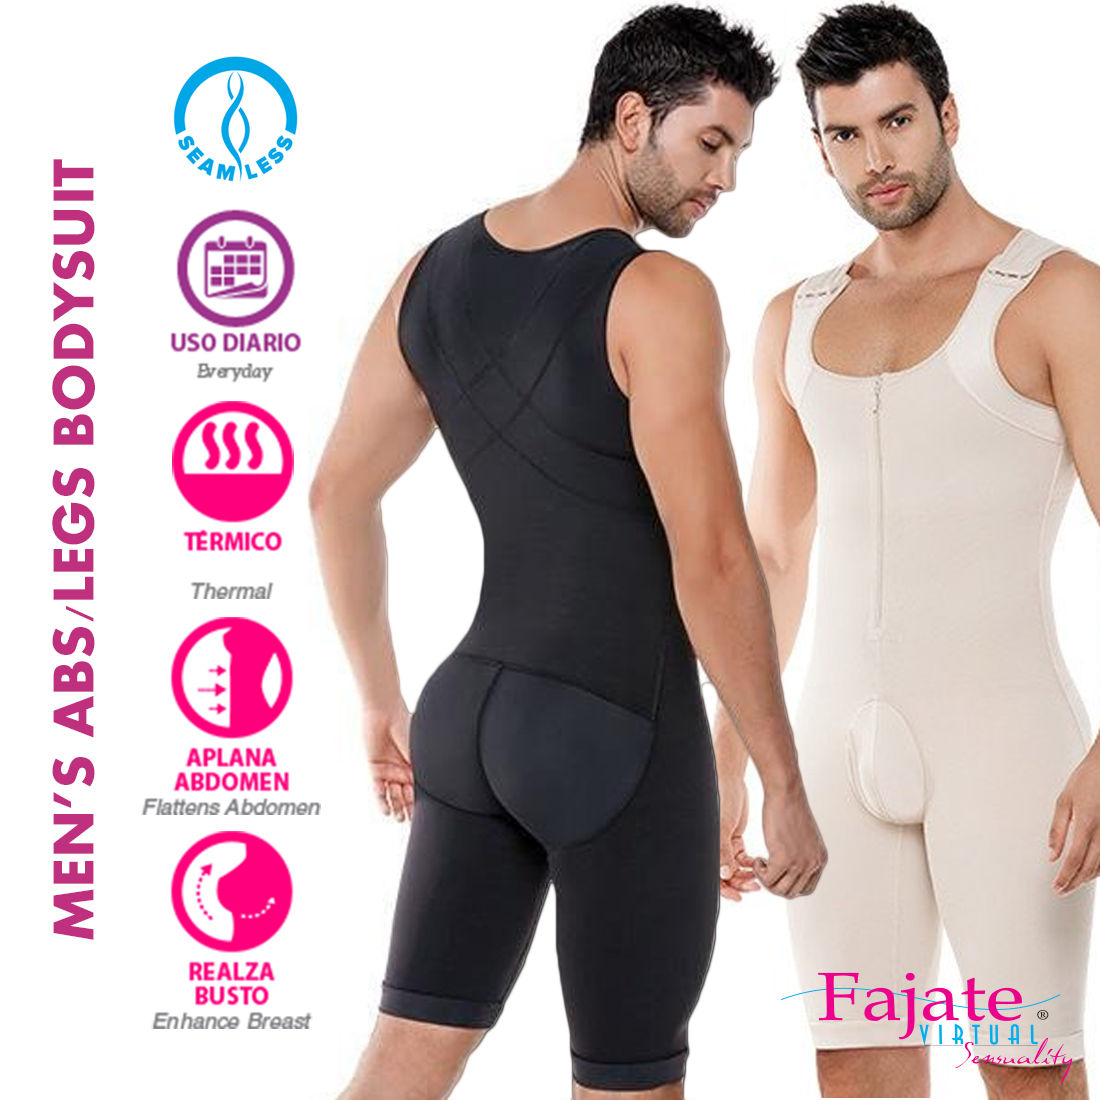 f283eeb21cd52 Colombian Fajate Men Full Body Shaper Tummy Lipo Waist Leg Compression  Bodysuit